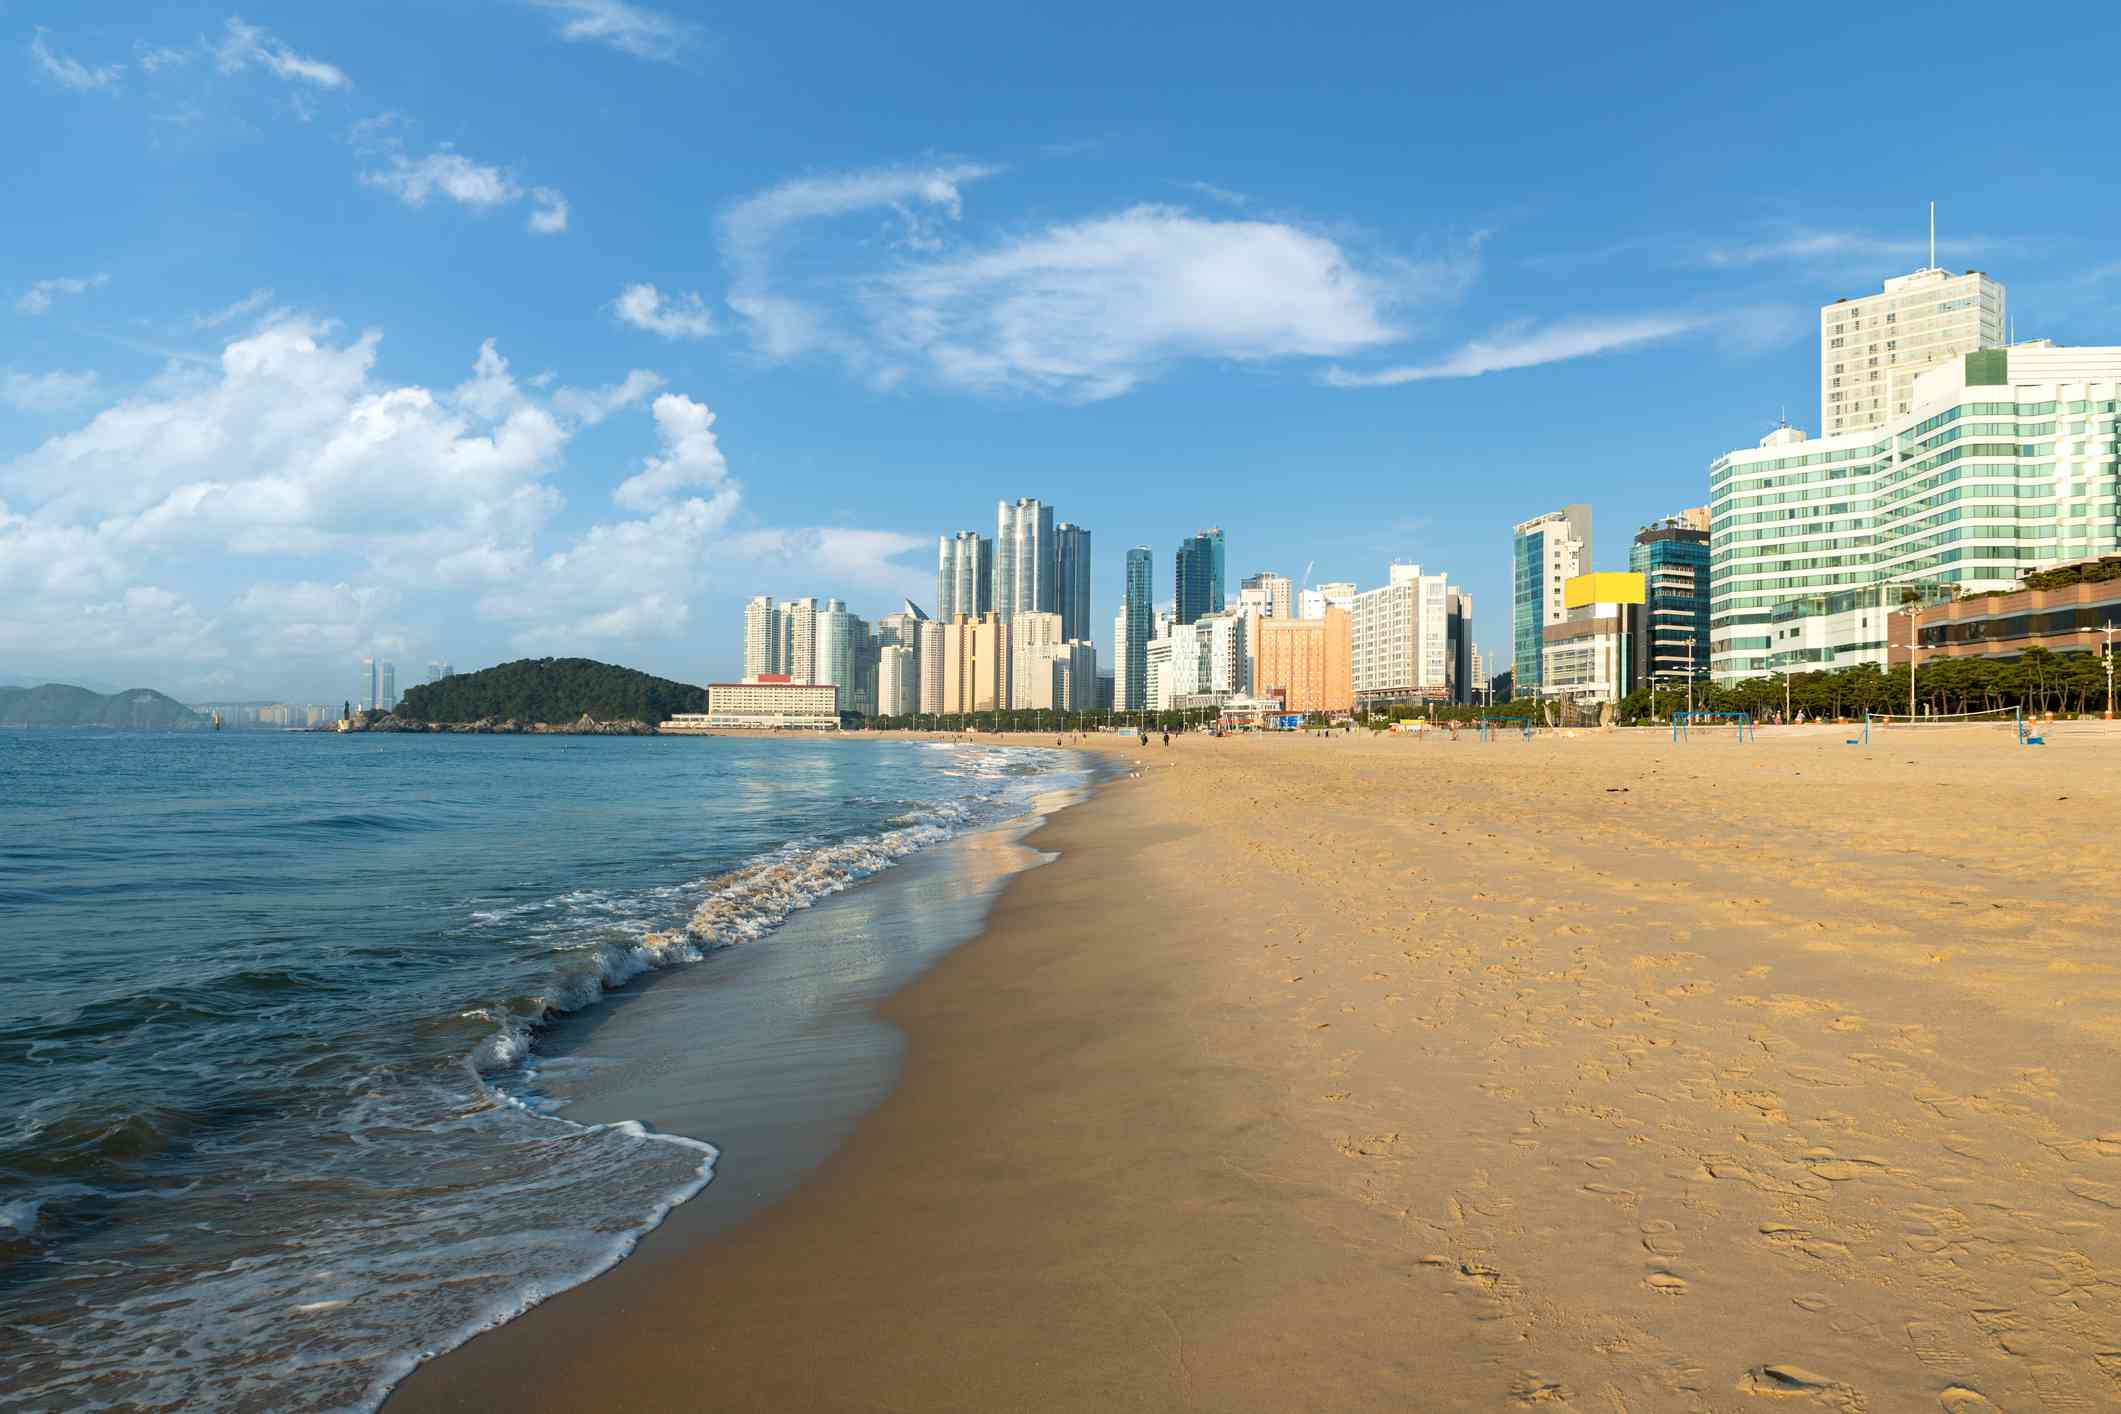 Haeundae beach in Busan, South Korea with no people and the city skyline in the background